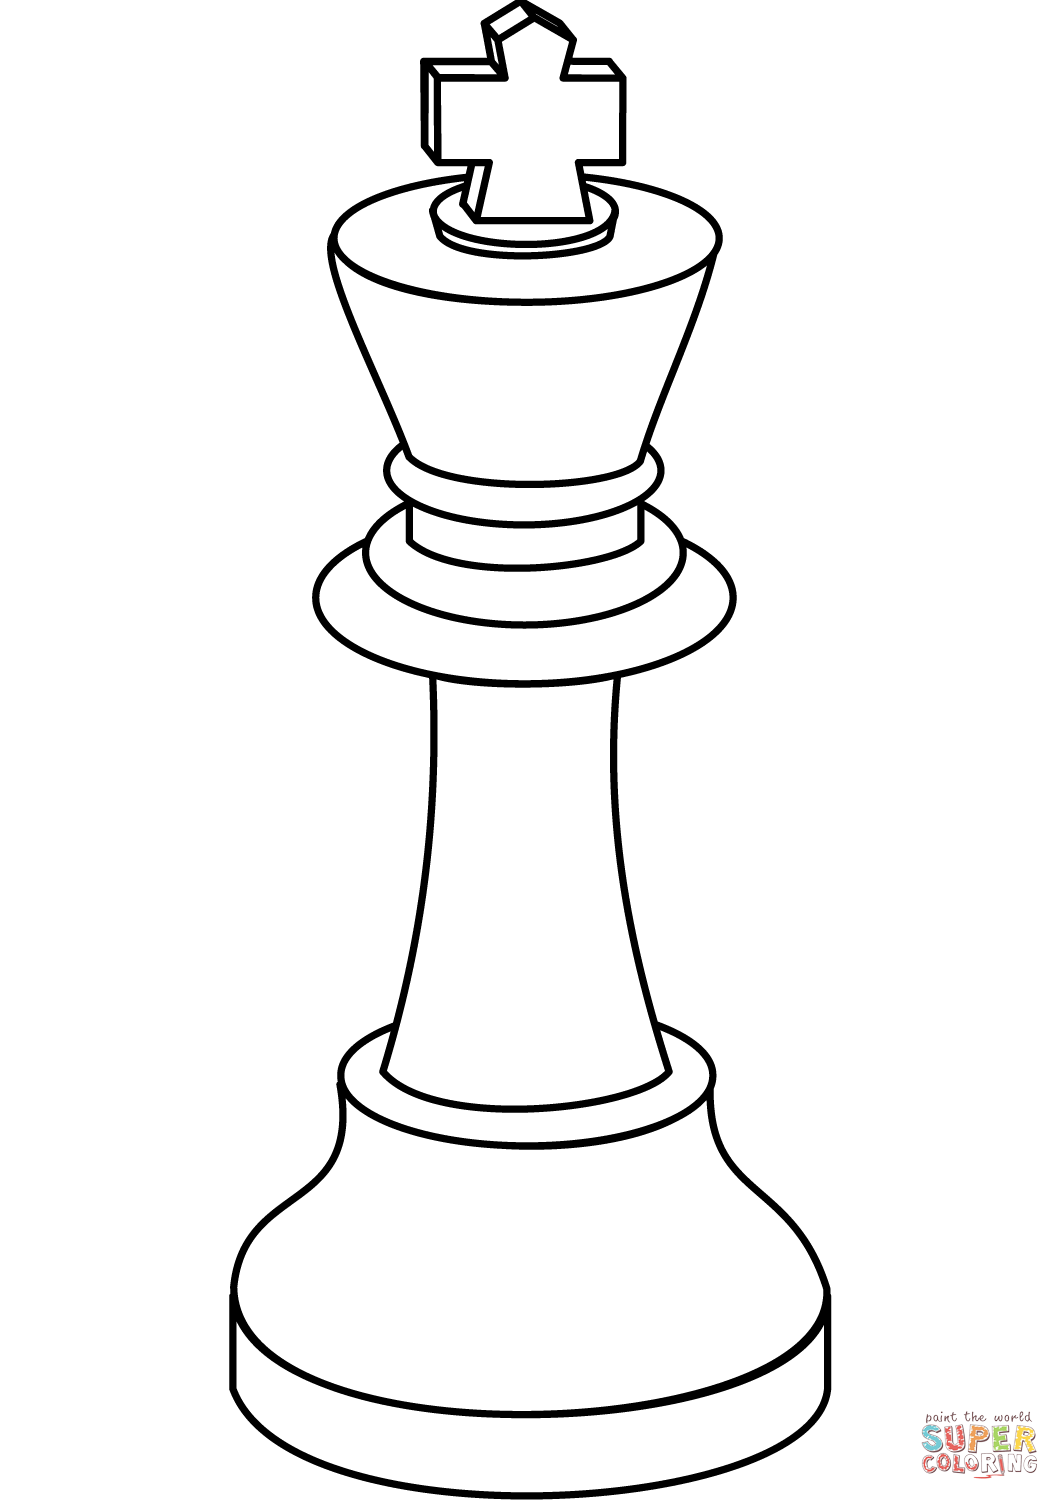 1060x1500 List Of Synonyms And Antonyms Of The Word King Chess Piece Drawing